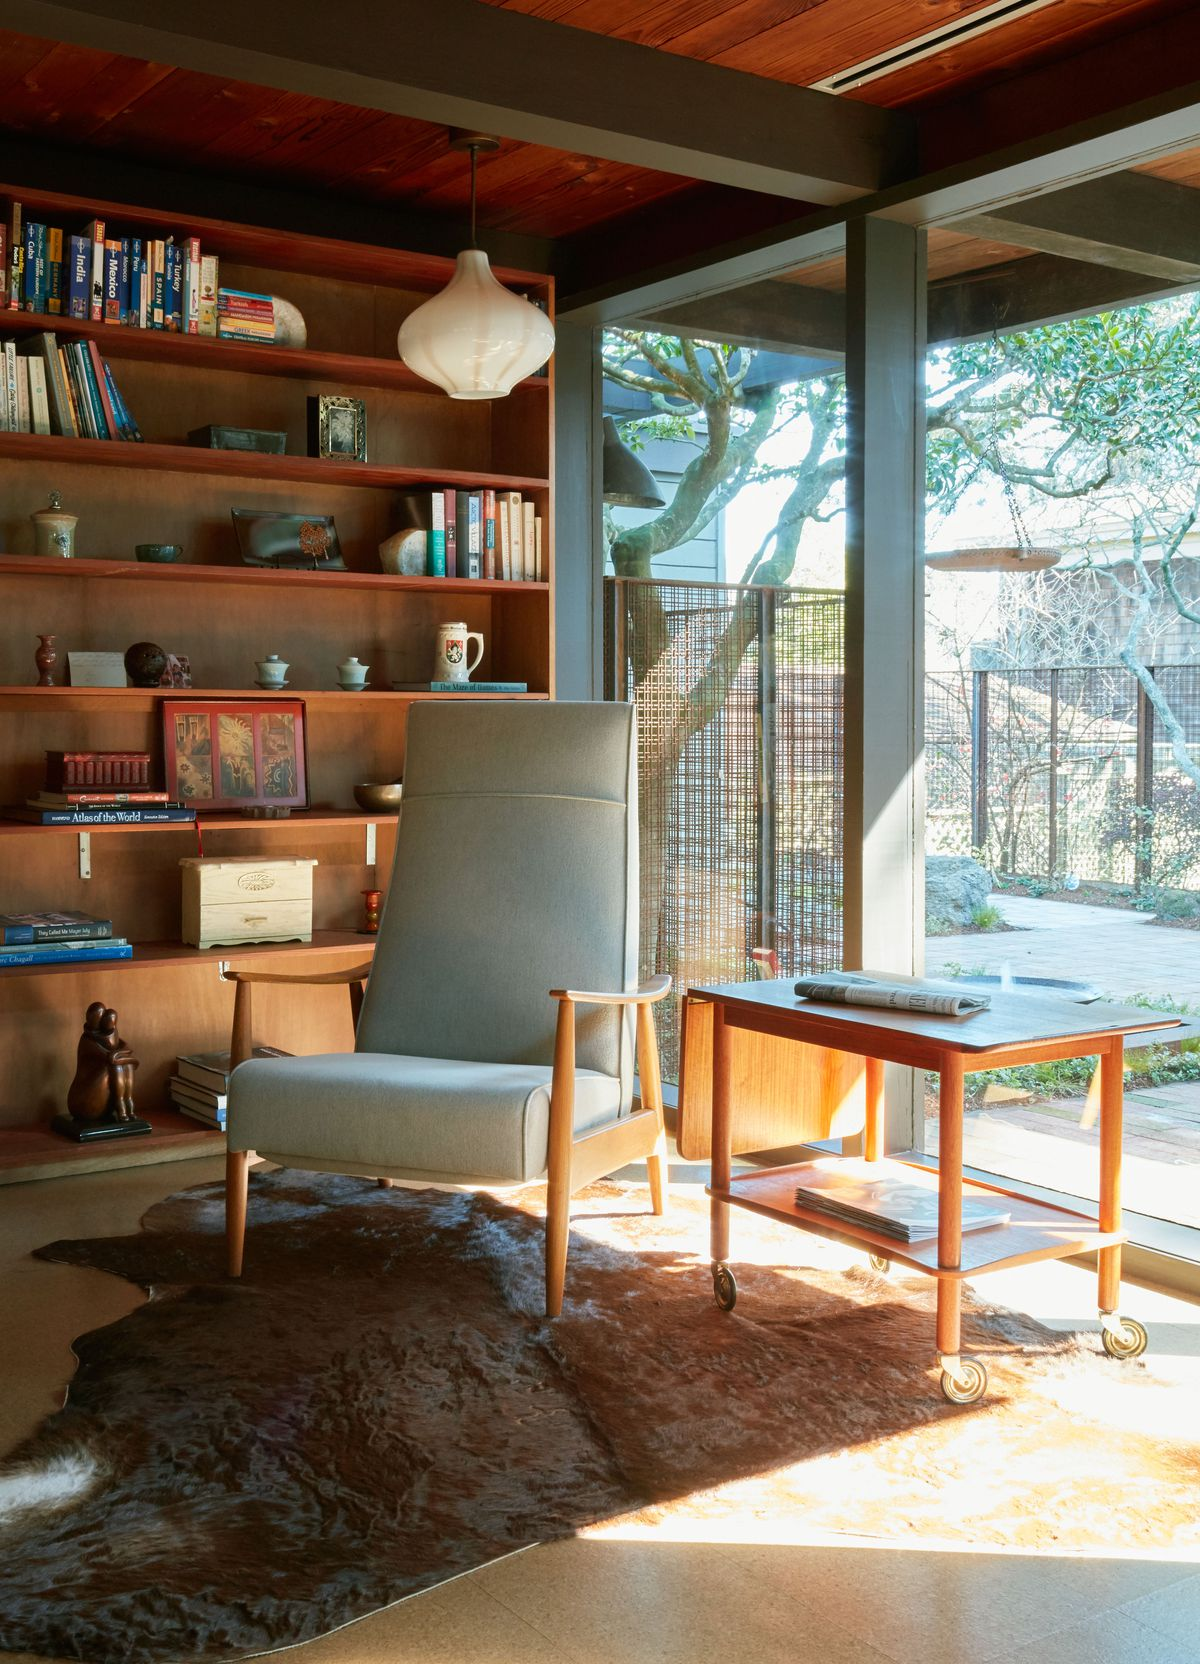 A living area. There is a chair and a table. There is an area rug. On the far wall are floor to ceiling shelves full of books and objects. On the other wall are floor to ceiling windows overlooking a yard.